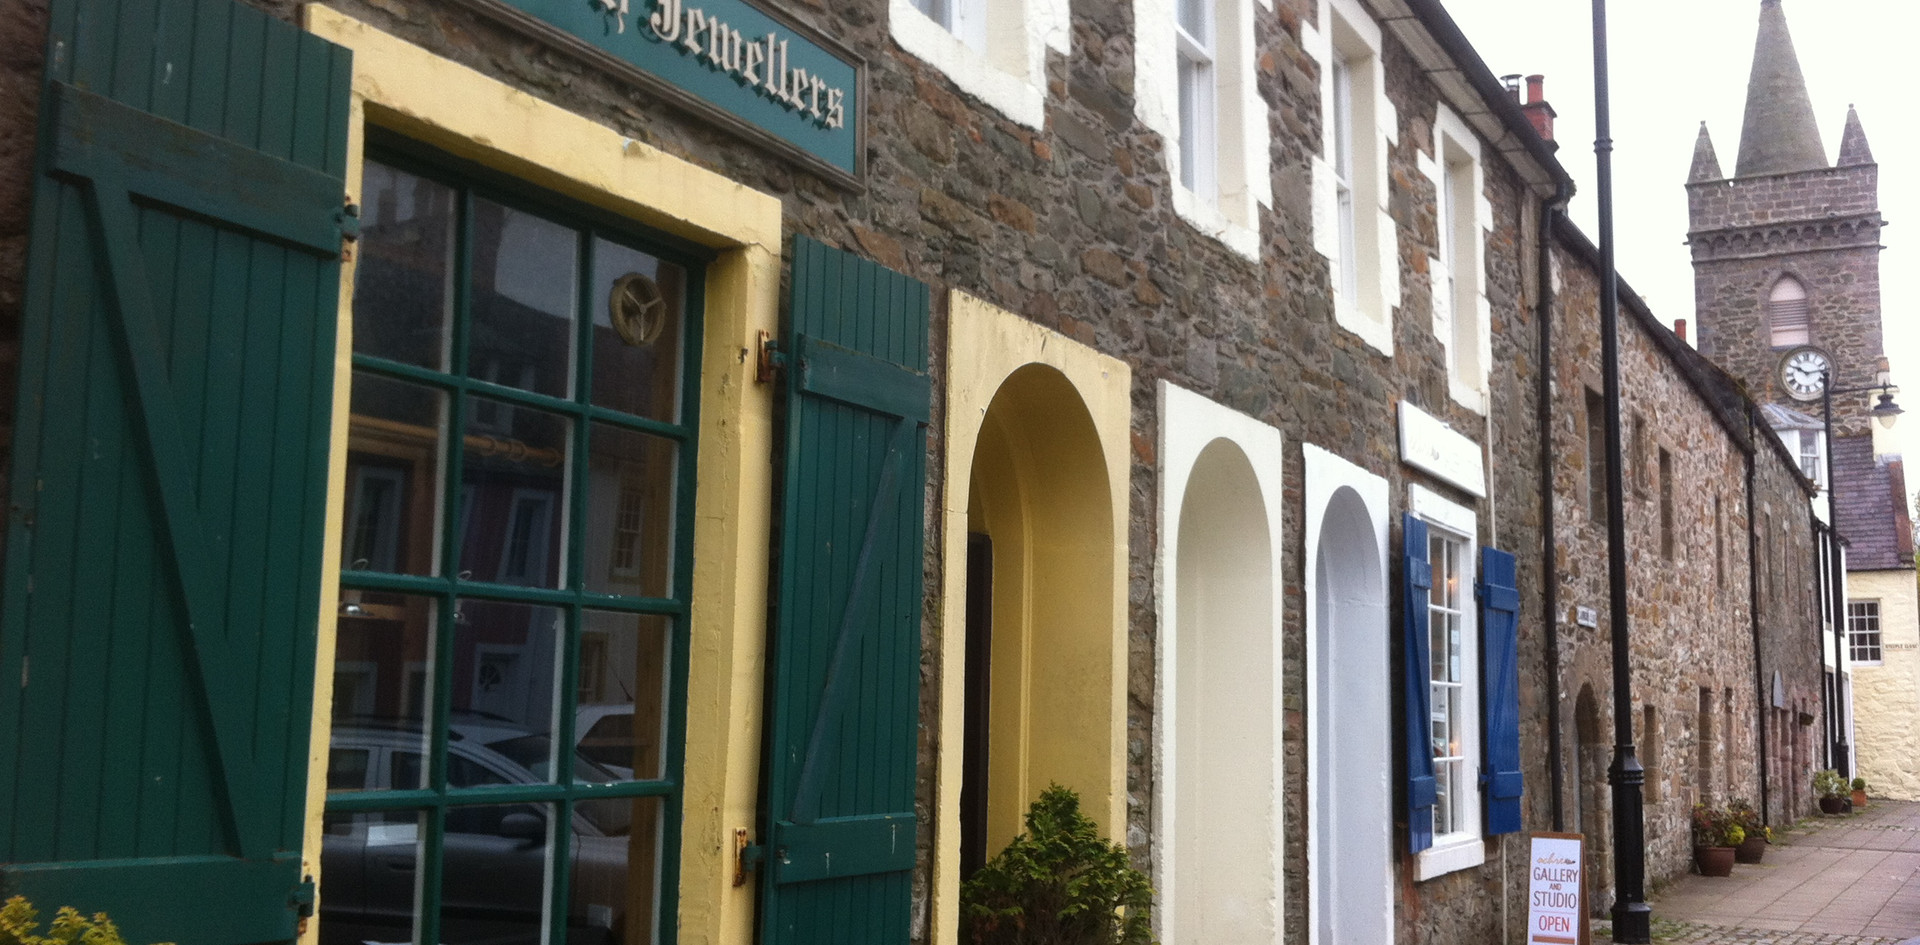 Some of the charming shops in Kirkcudbright